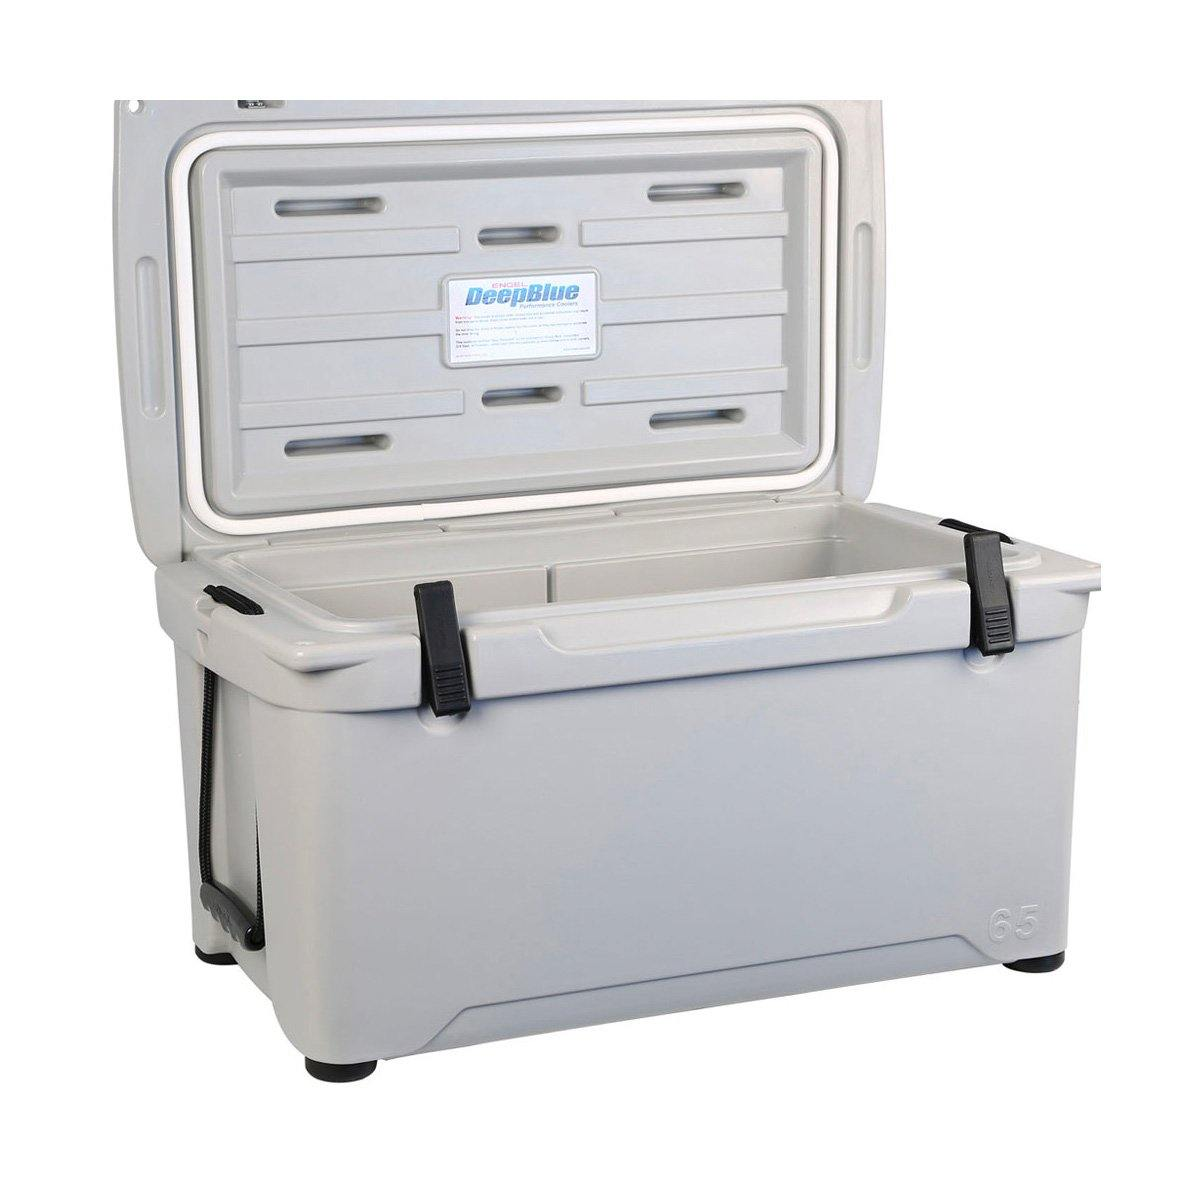 Engel 65 Hard Cooler (4349821550664)